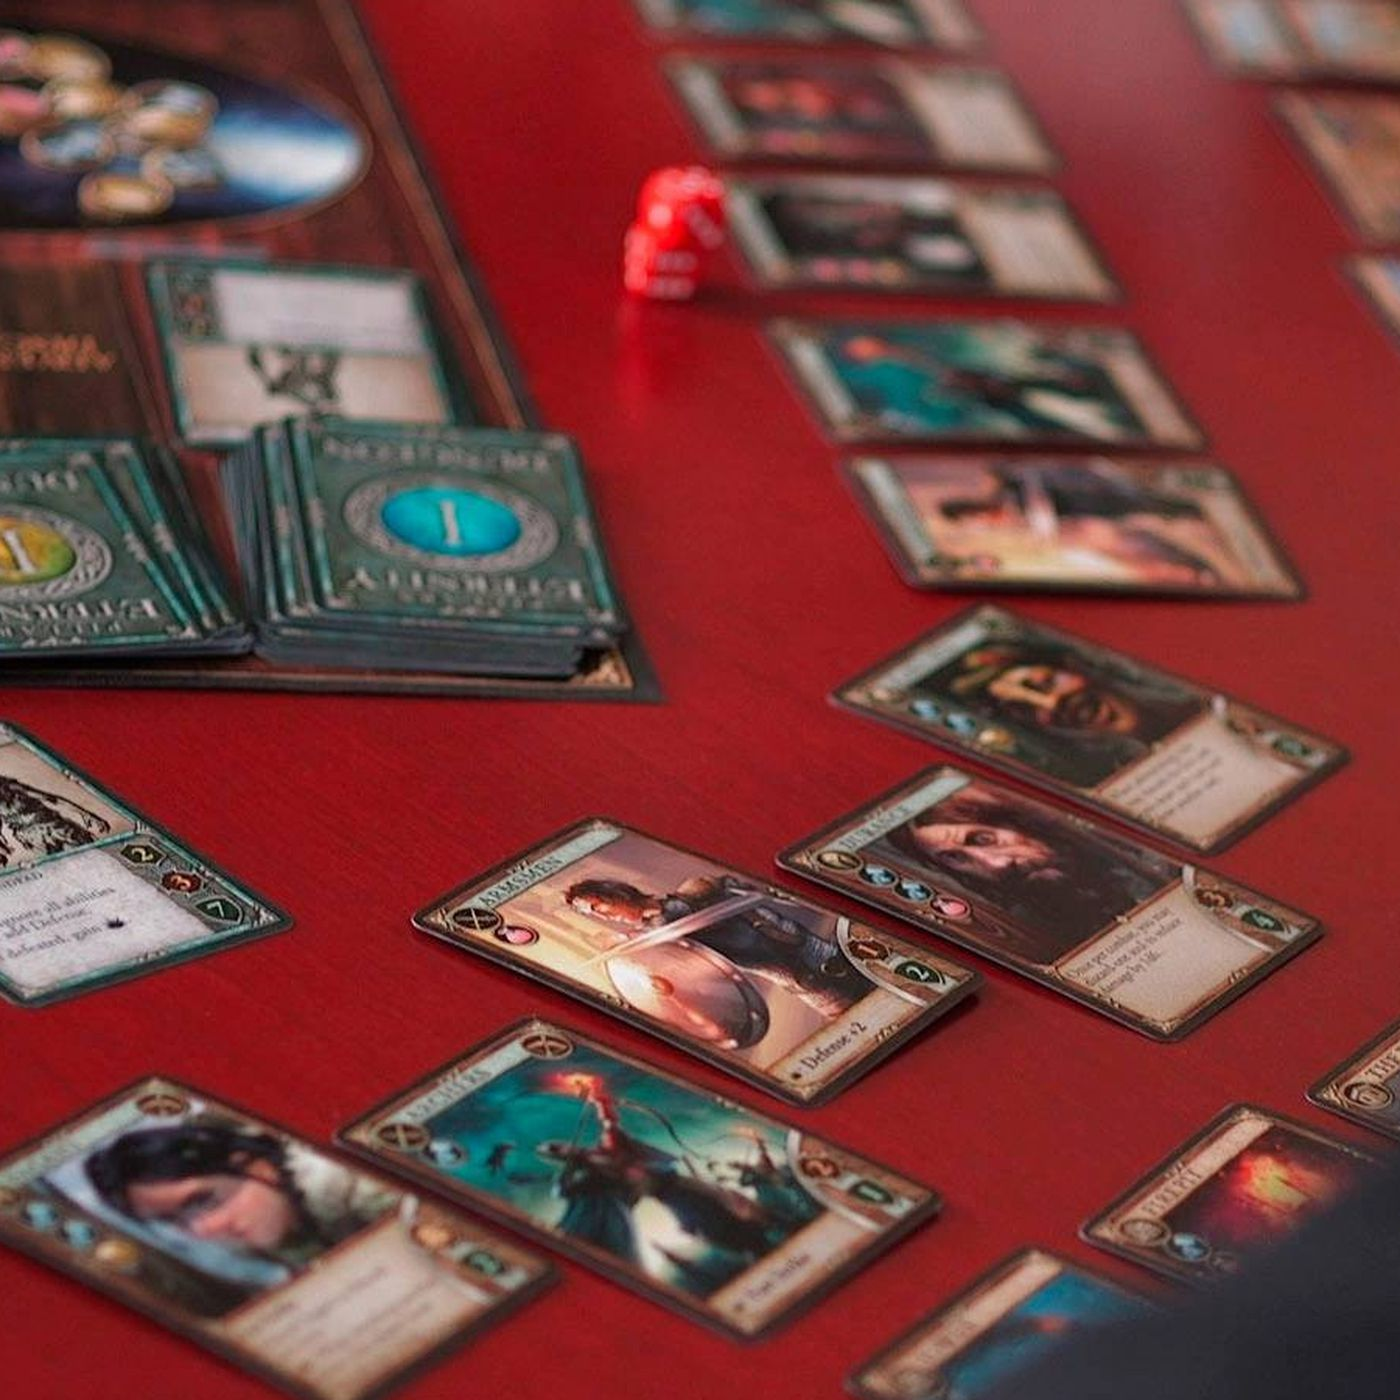 Obsidian's Pillars of Eternity is getting a companion card game